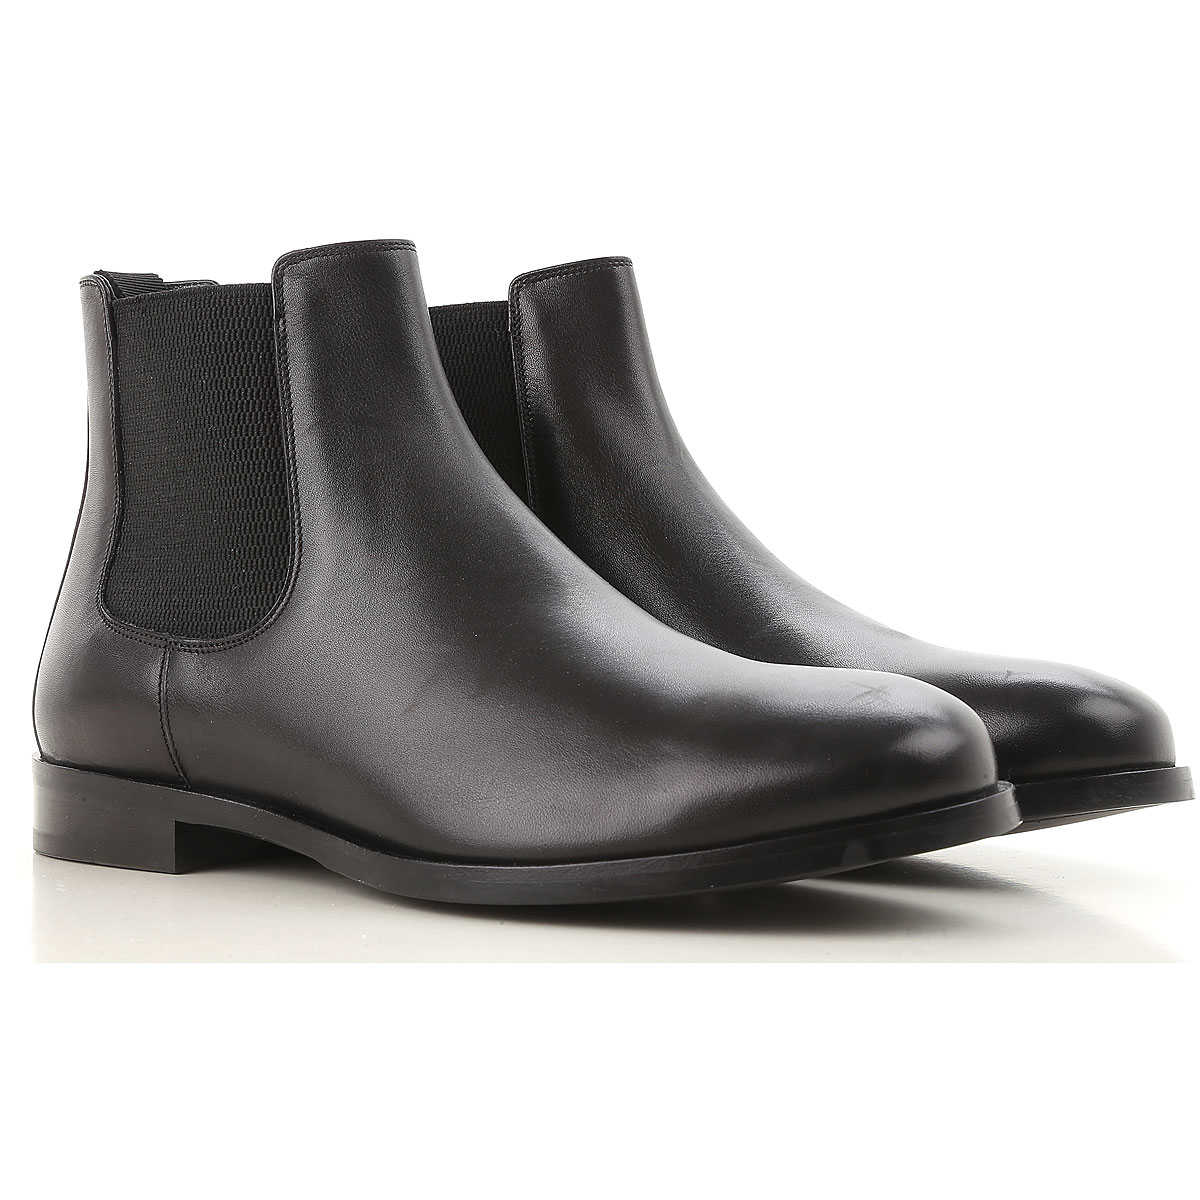 Dolce & Gabbana Boots for Men Booties On Sale in Outlet SE - GOOFASH